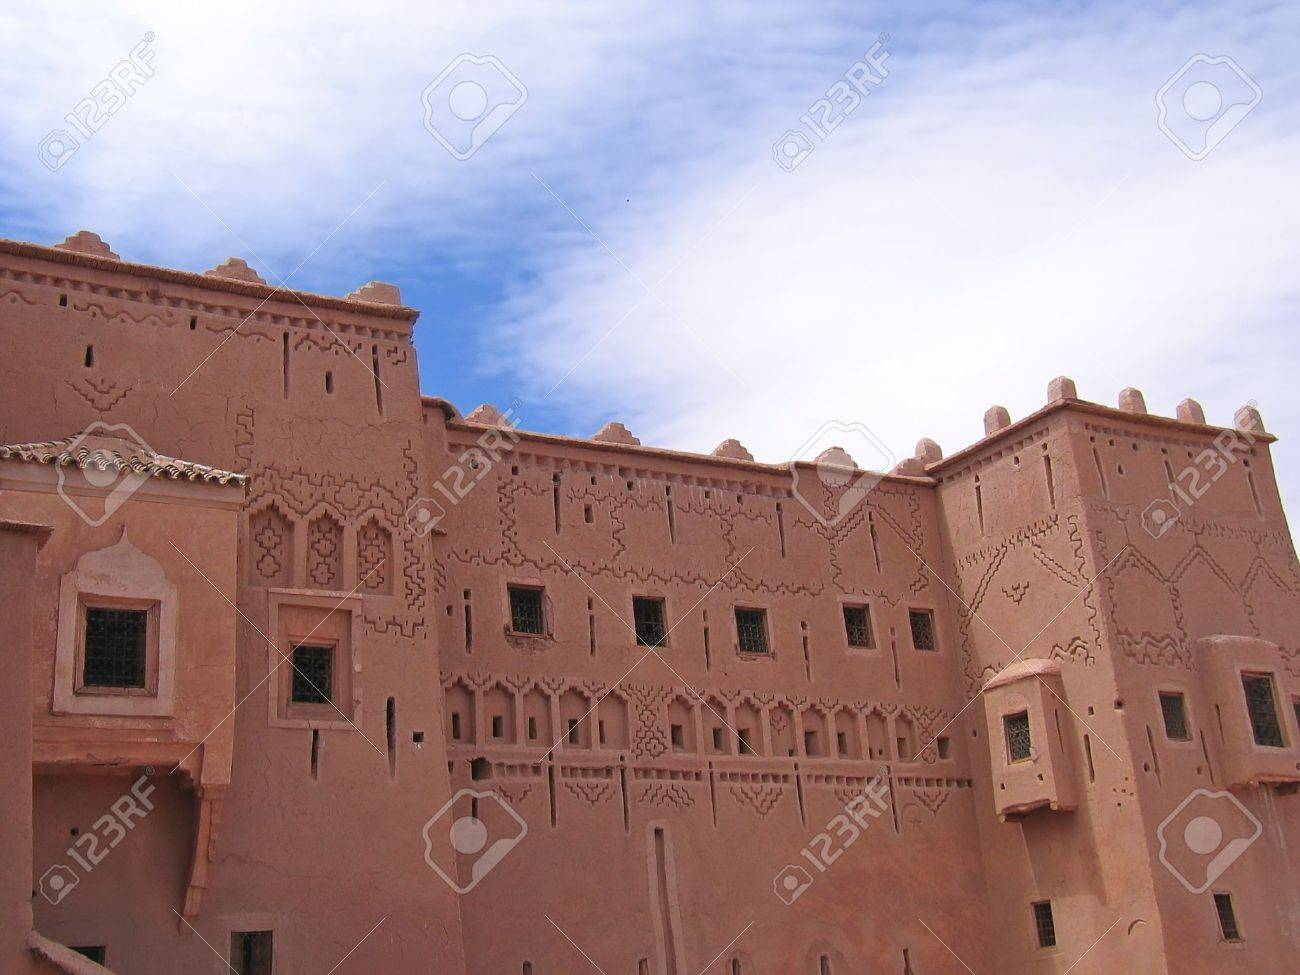 Detail of oriental maroccan architecture on a wall of a red fortress - Taourirt Kasbah - Ouarzazate - Morocco. Stock Photo - 914341